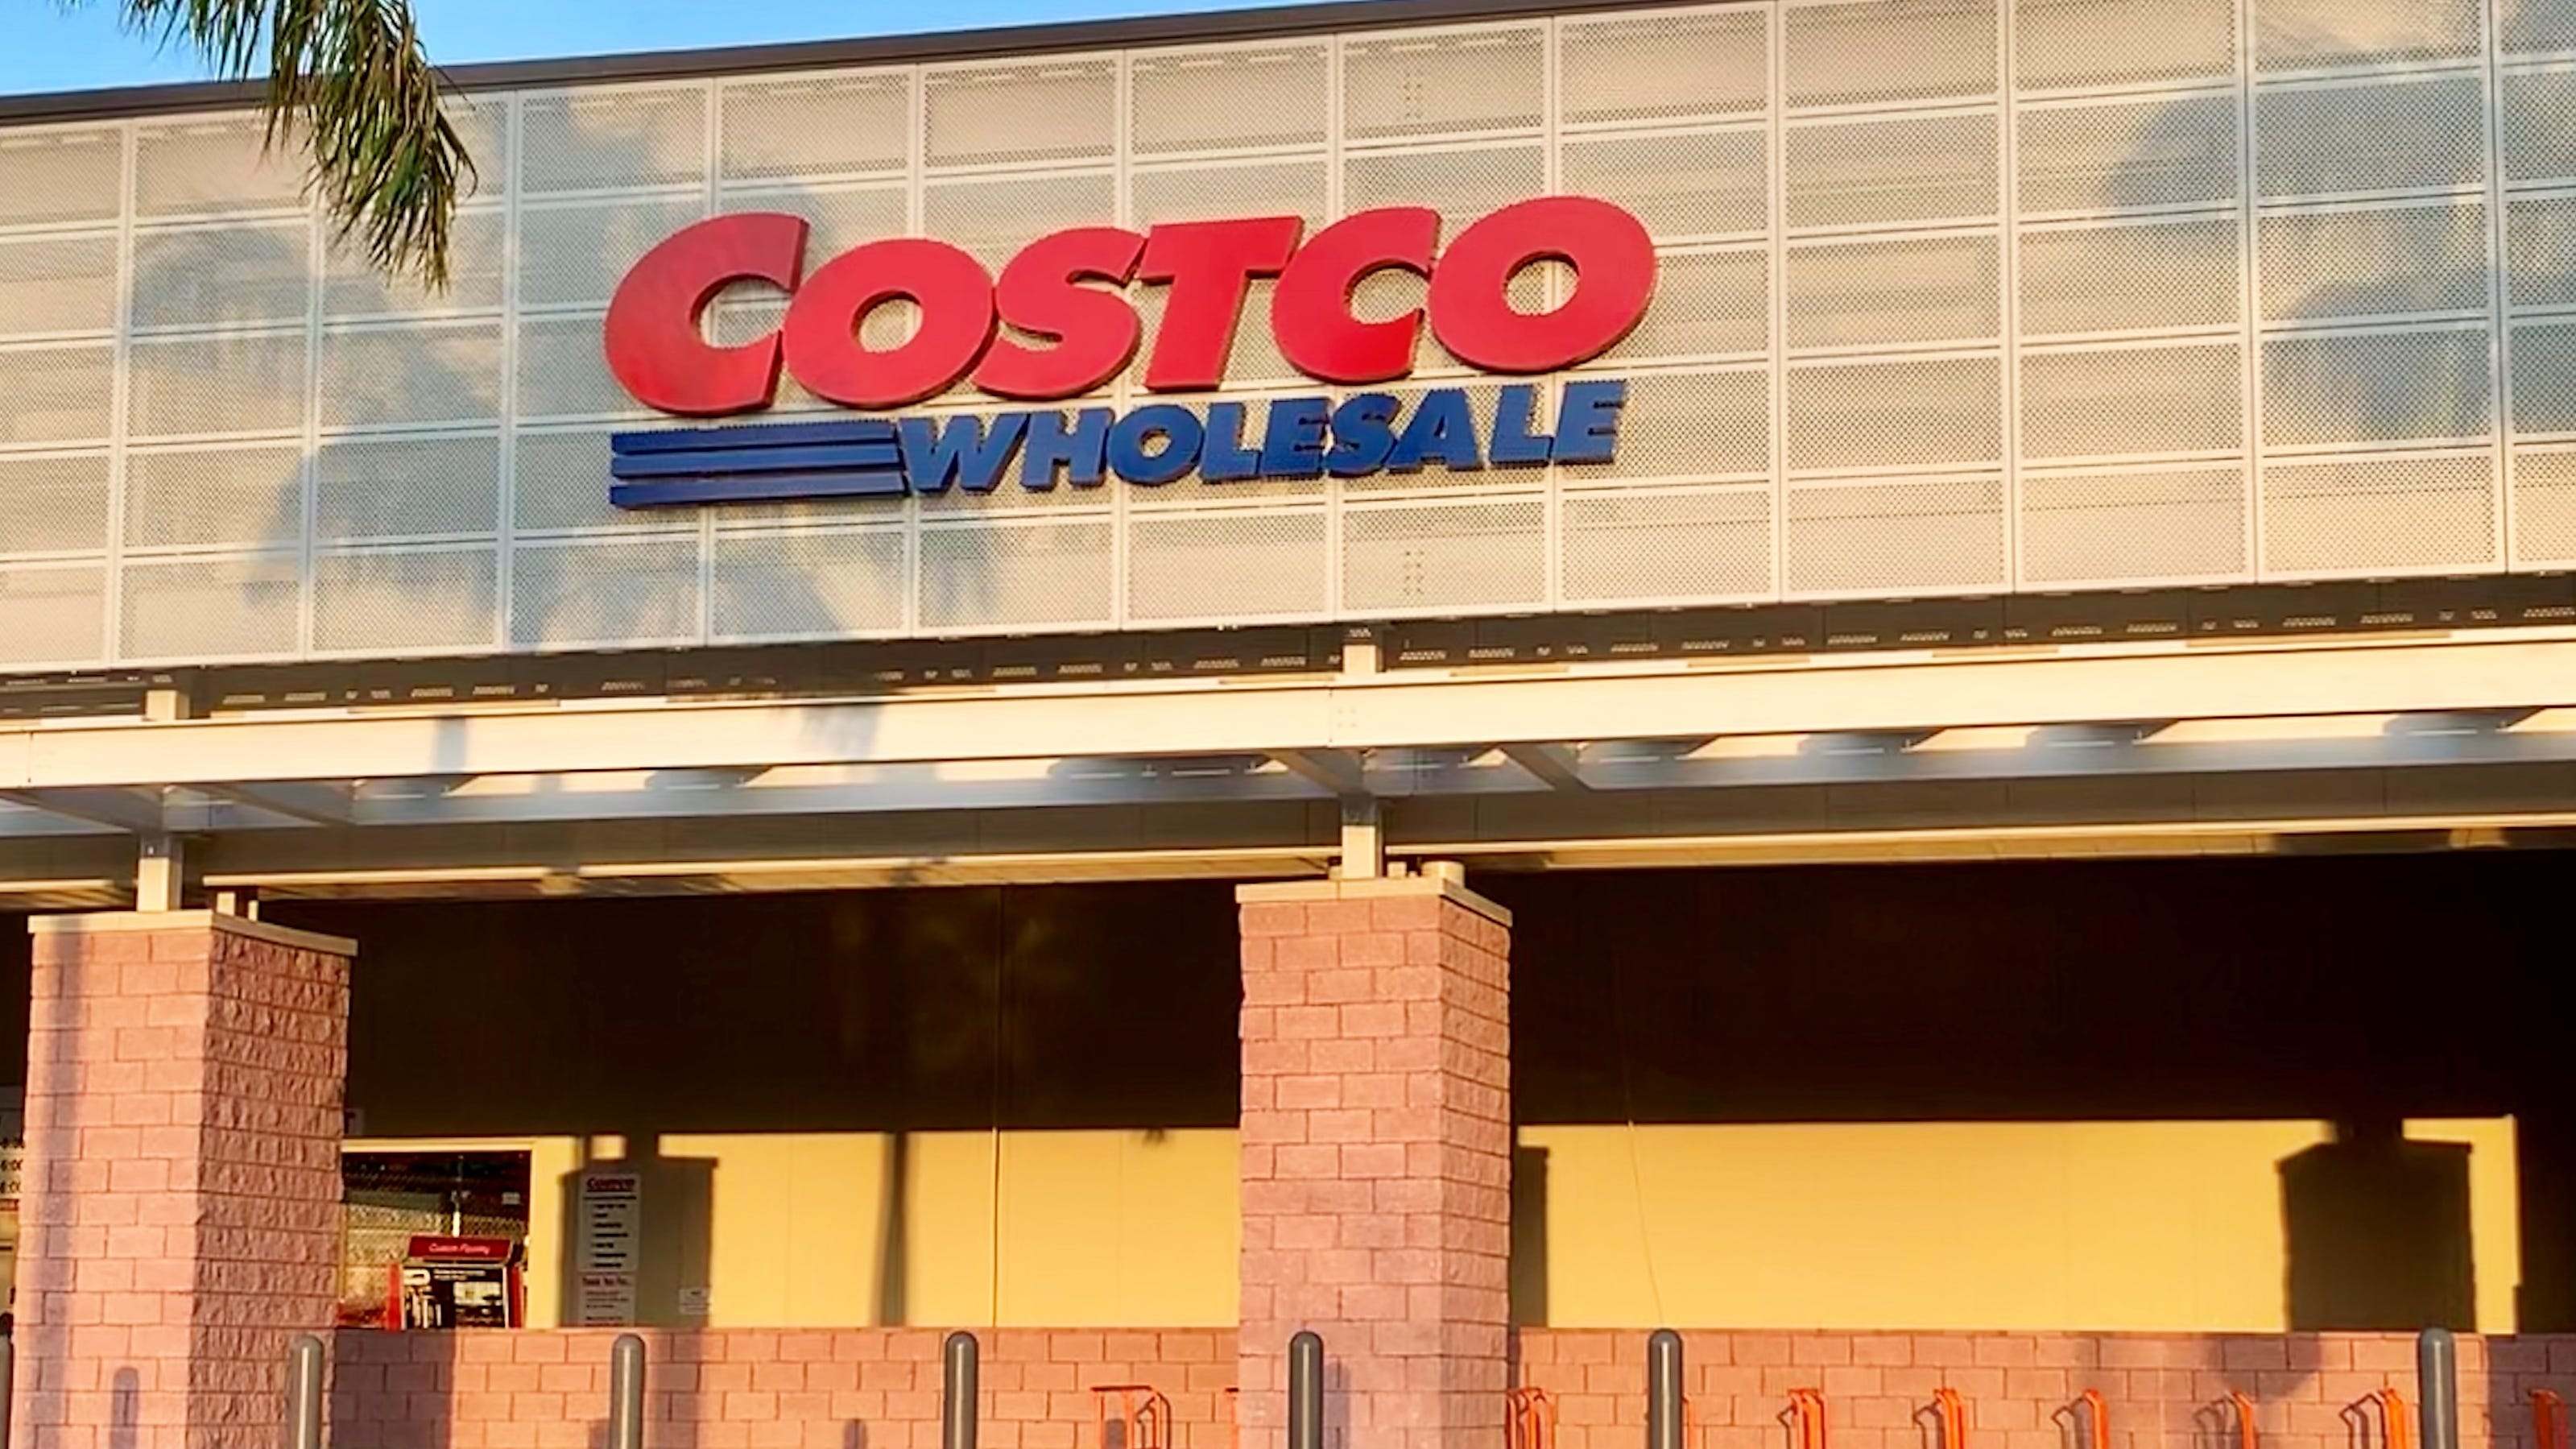 Costco Wholesale is known for selling bulk products.